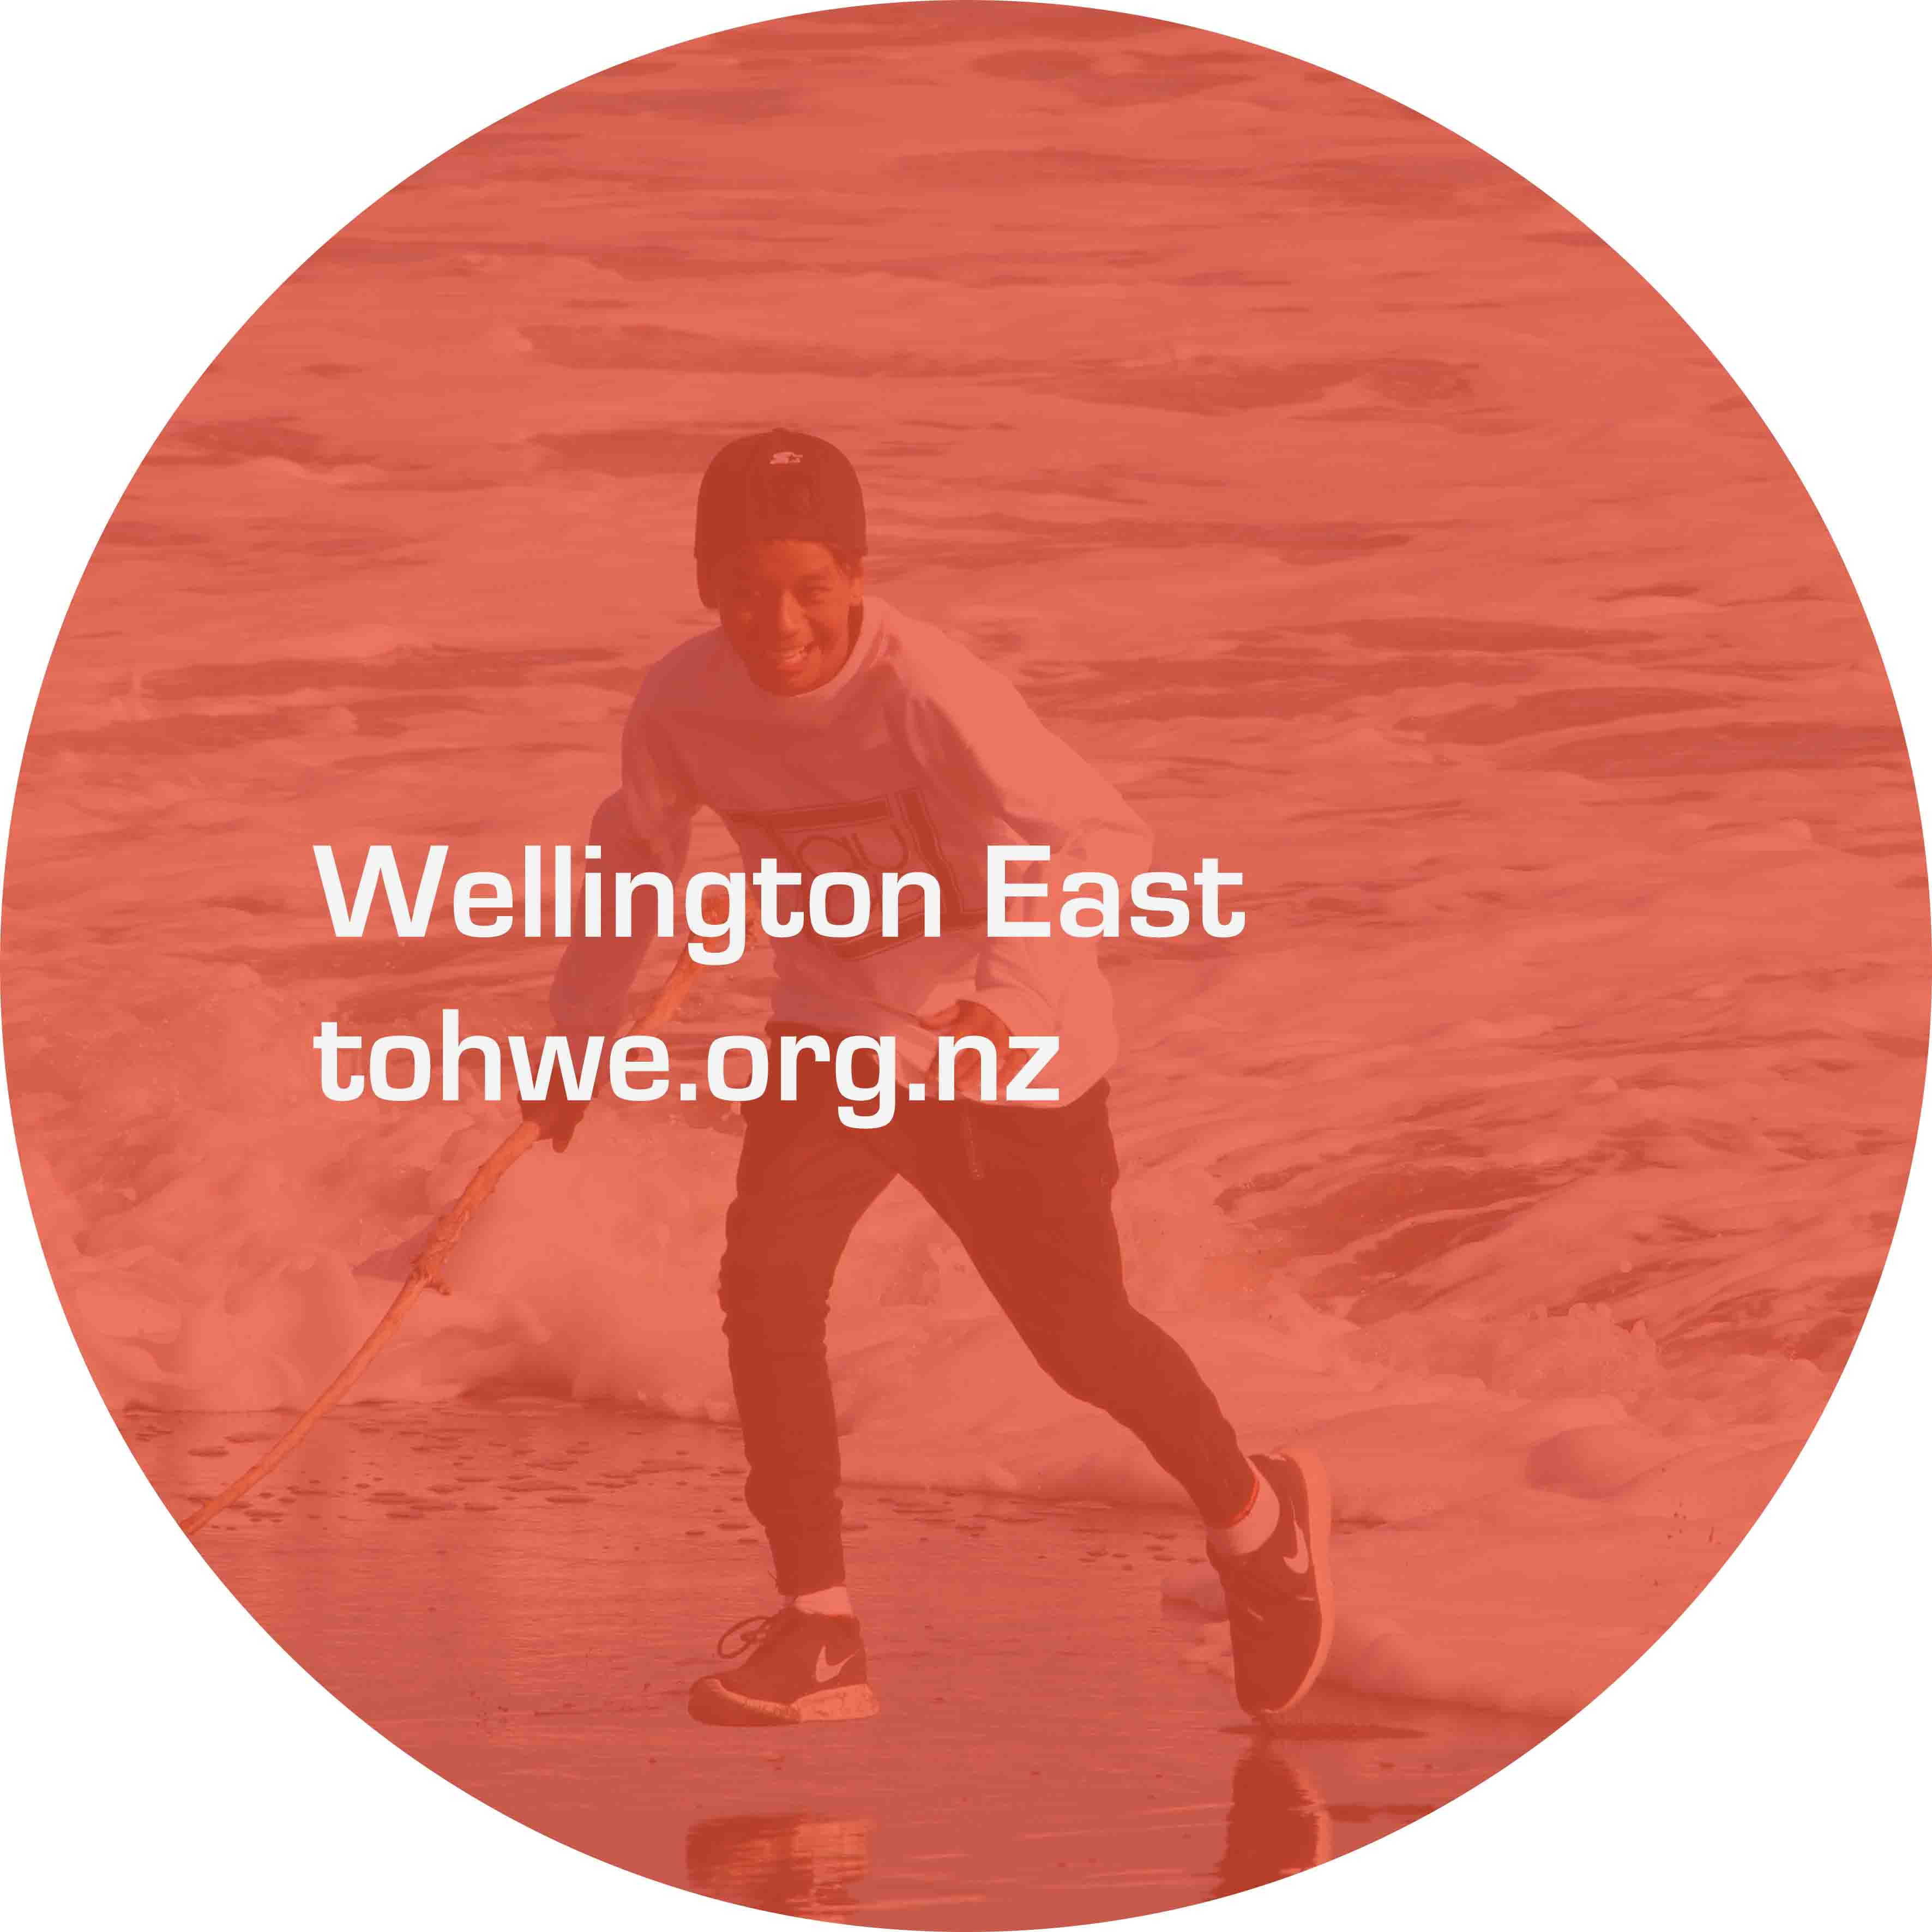 redirection to TOH Wellington East webpage